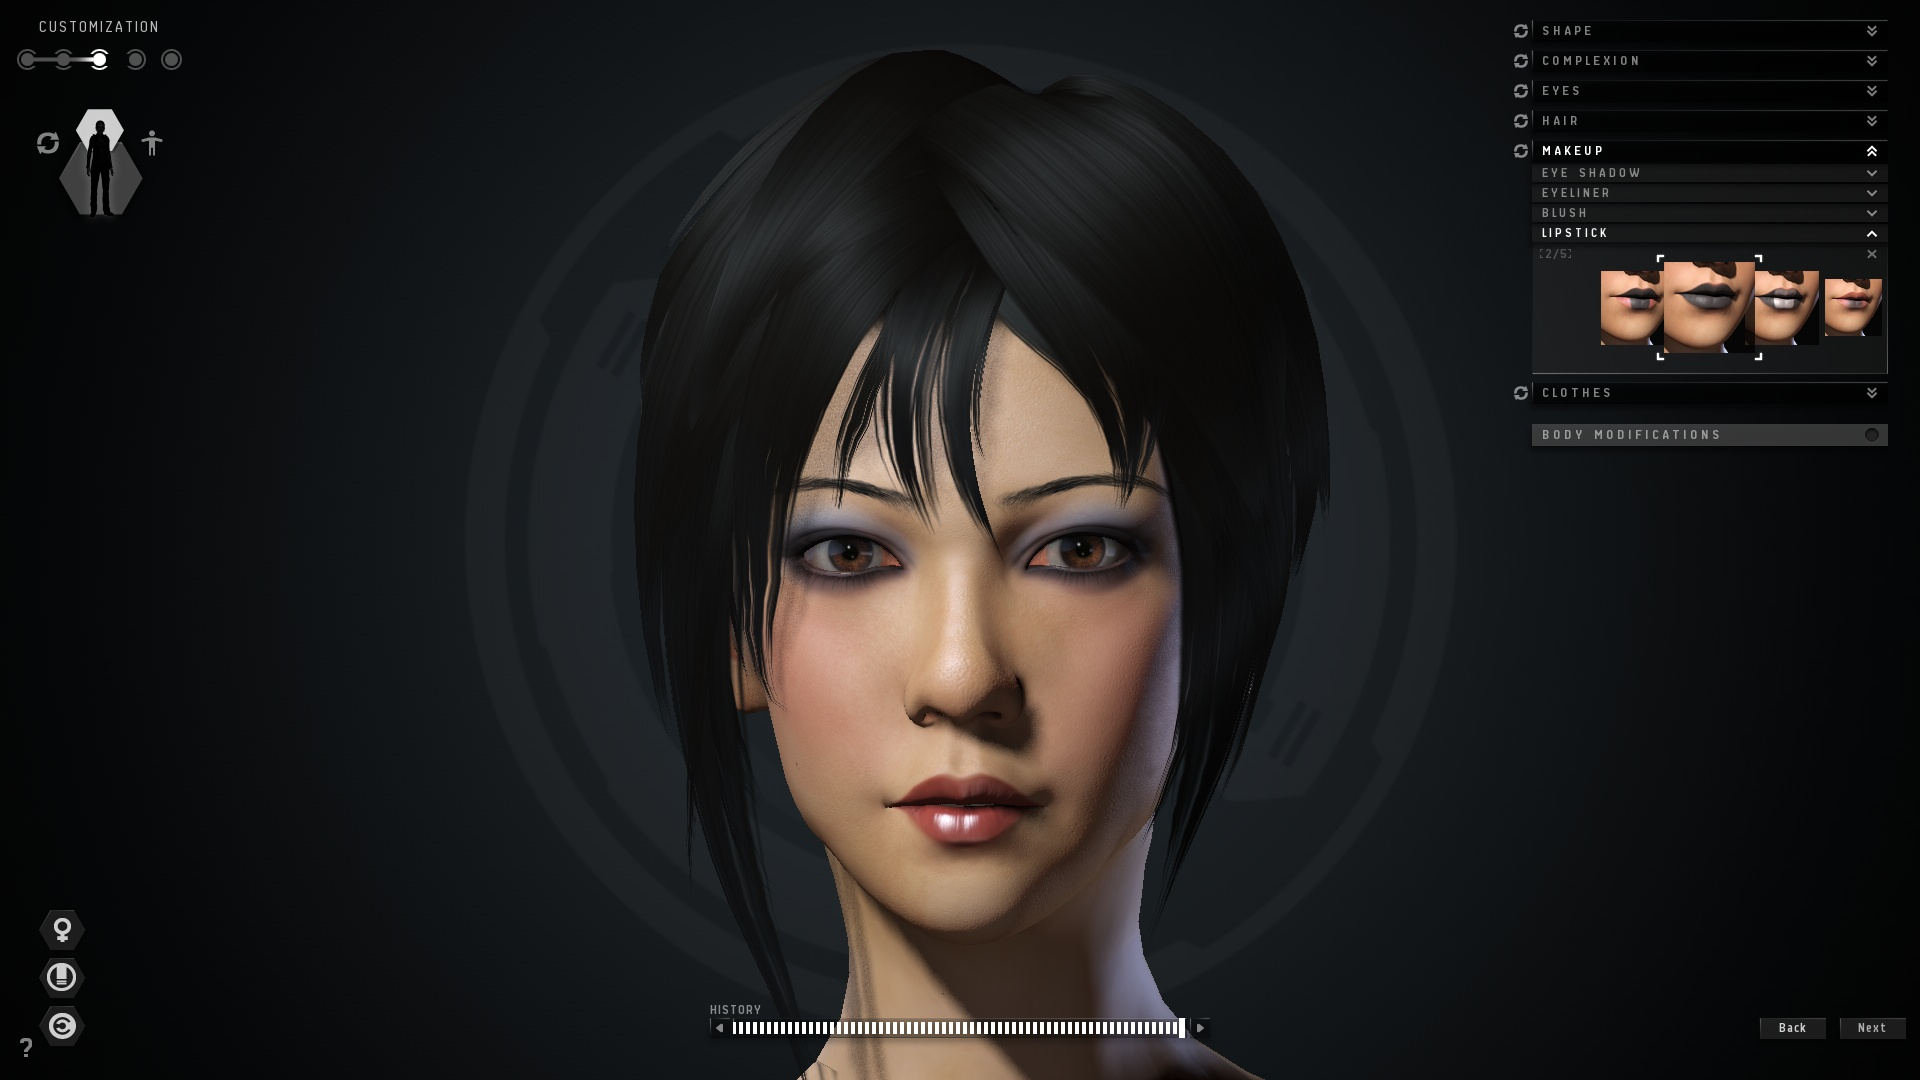 eve online character creator 2 by techstepman on deviantart